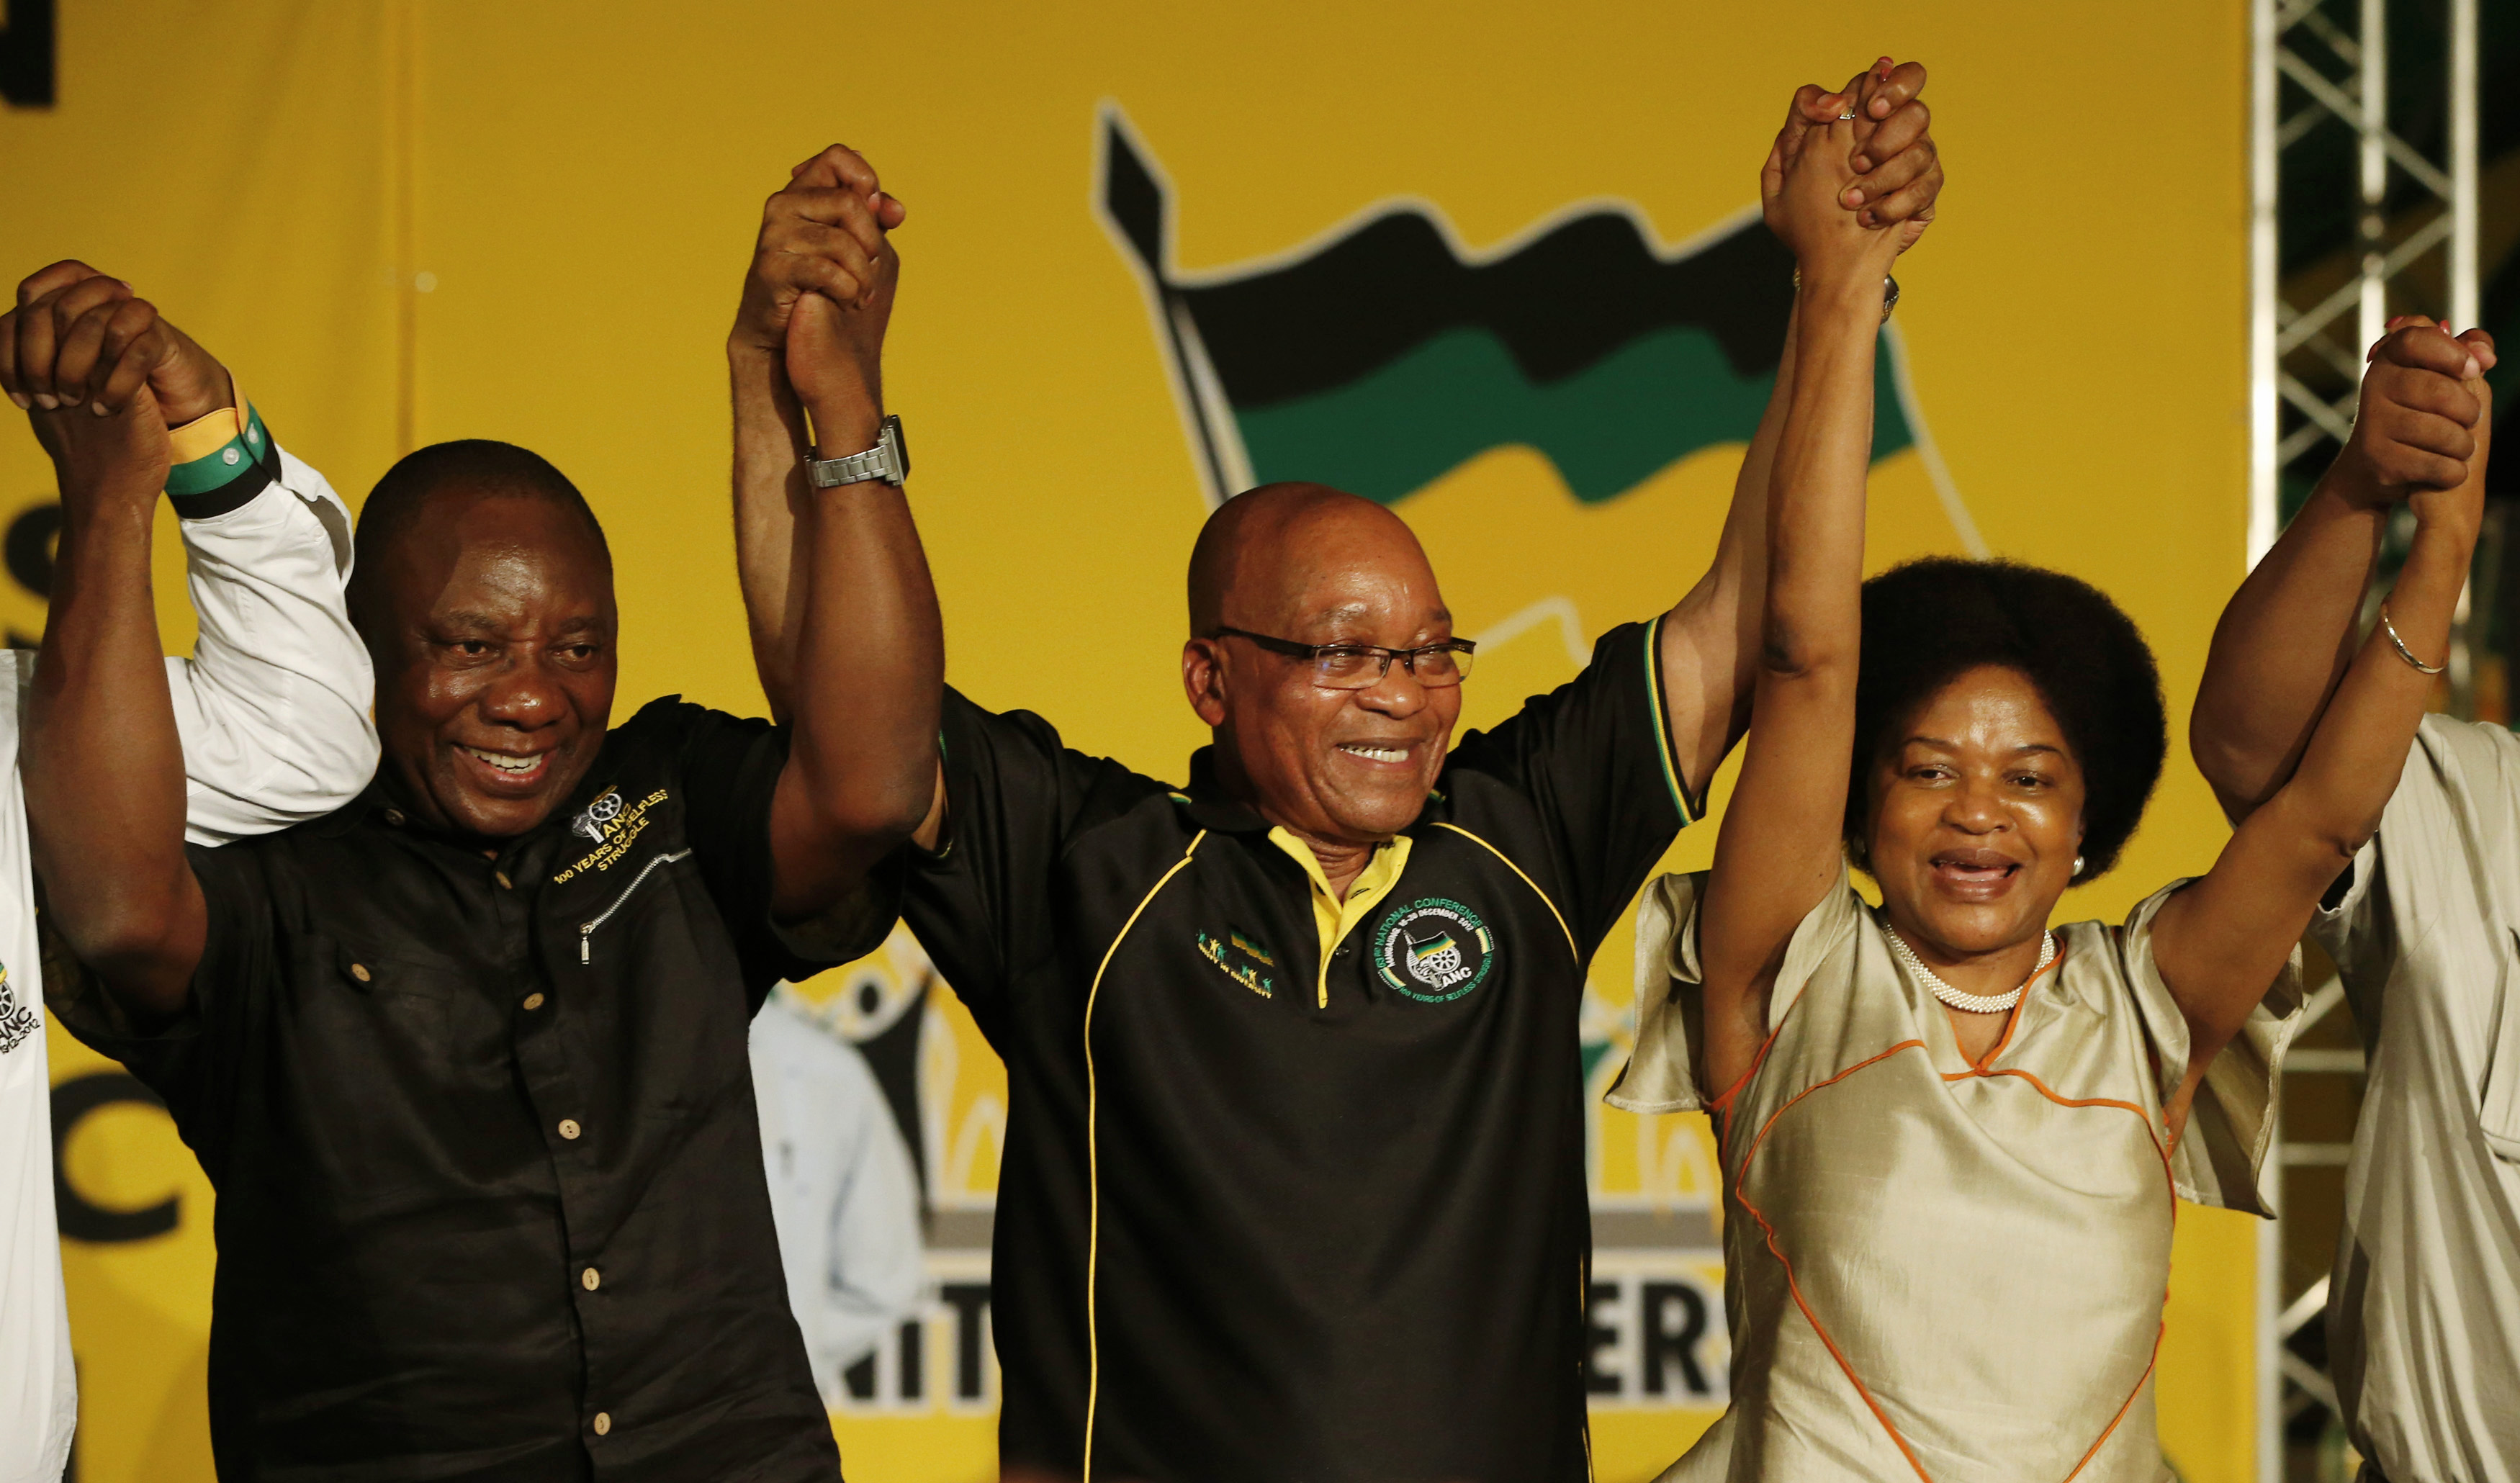 Nkosazana Dlamini-Zuma and Baleka Mbete emerge as possible candidates for South Africa's first woman president